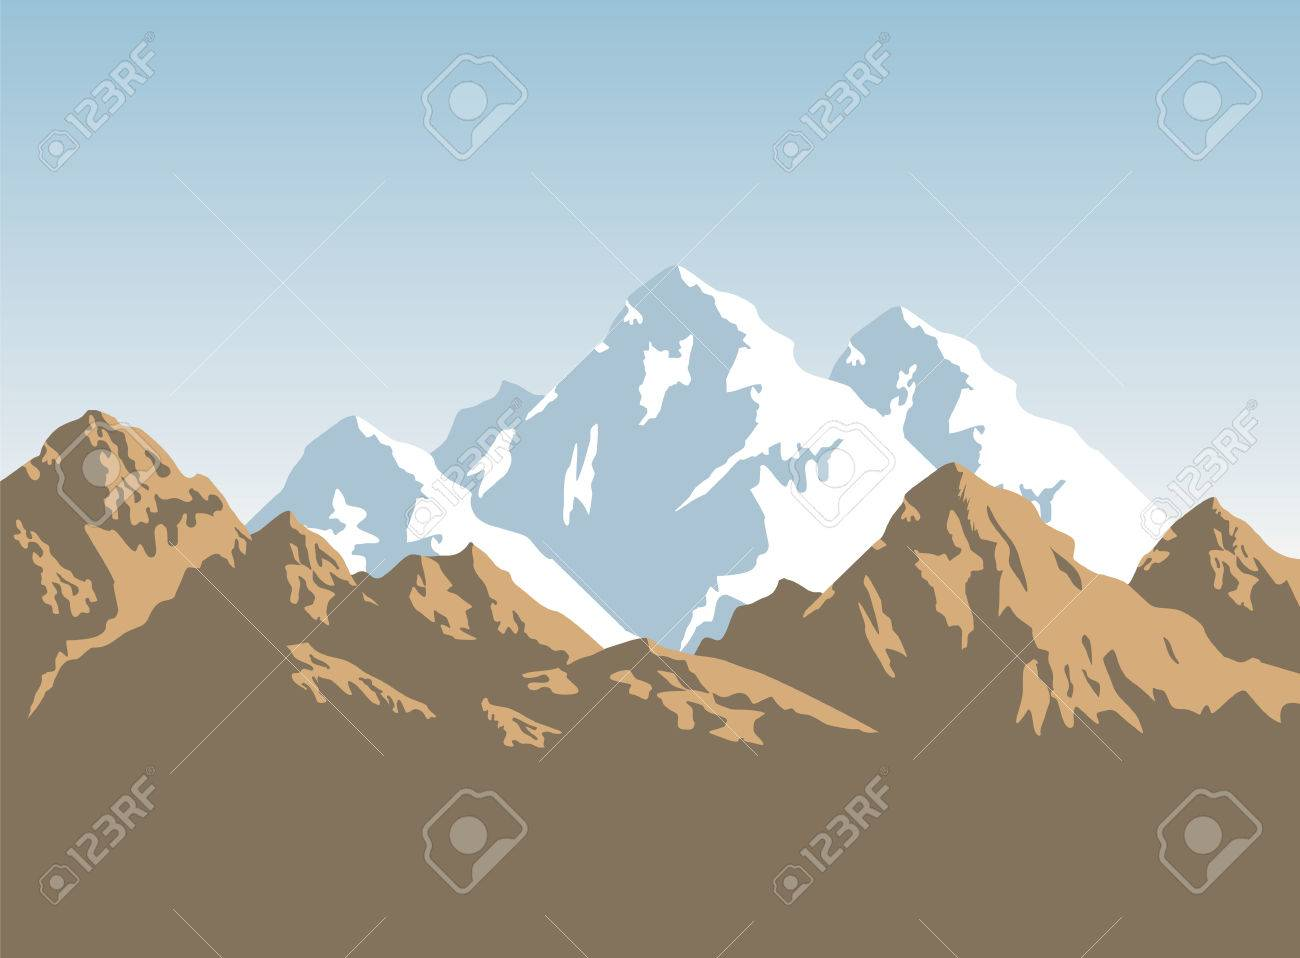 snowcapped mountains width brown rocks - background - 57919077